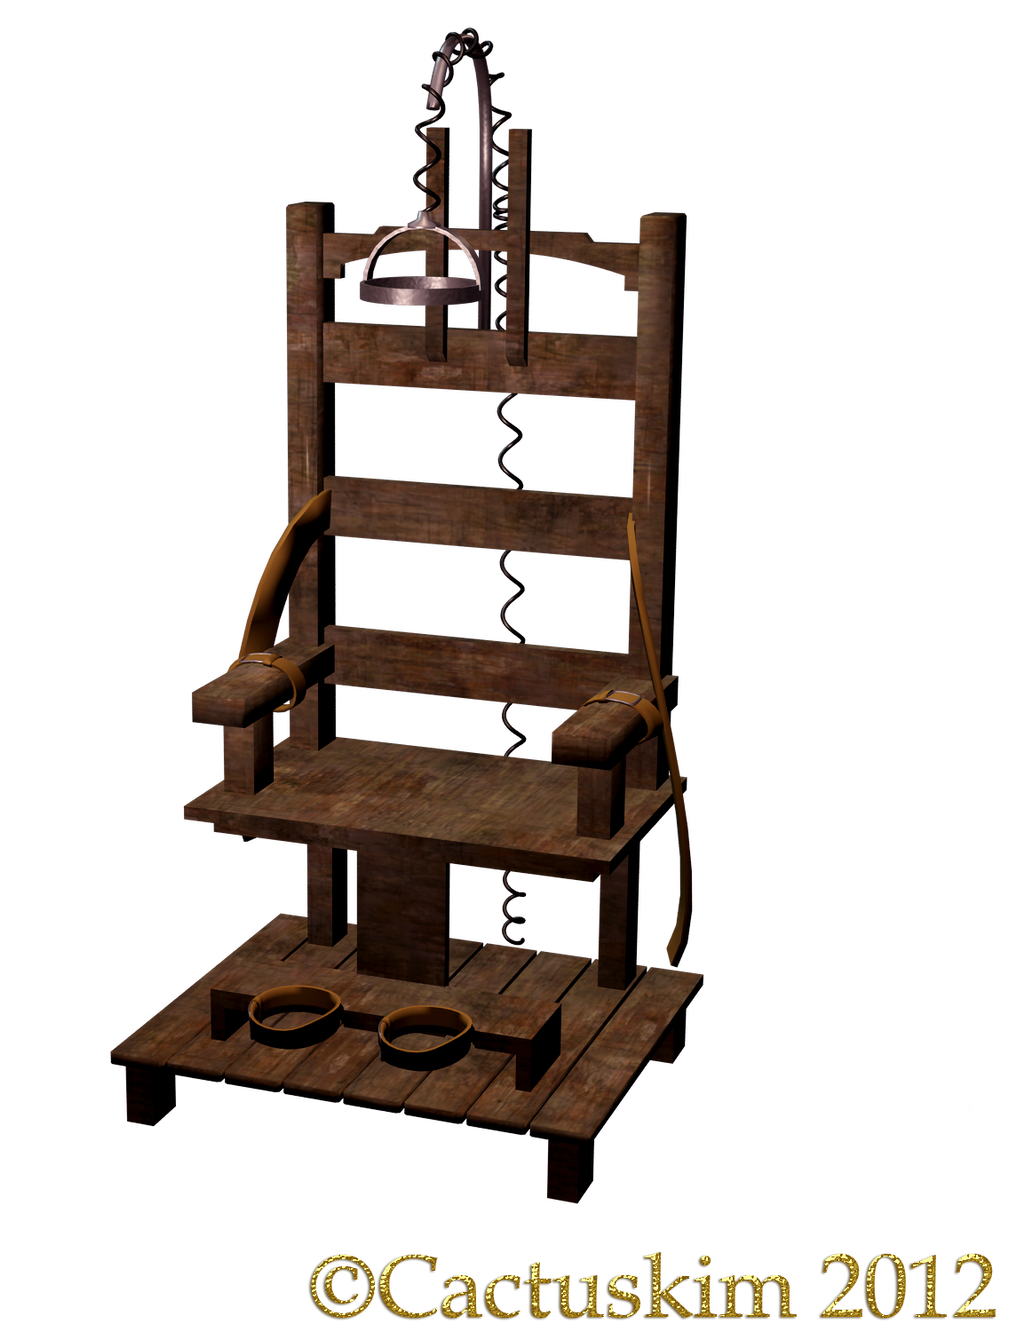 The chair kl png electric chair by cactuskim on deviantart - Execution chaise electrique video ...